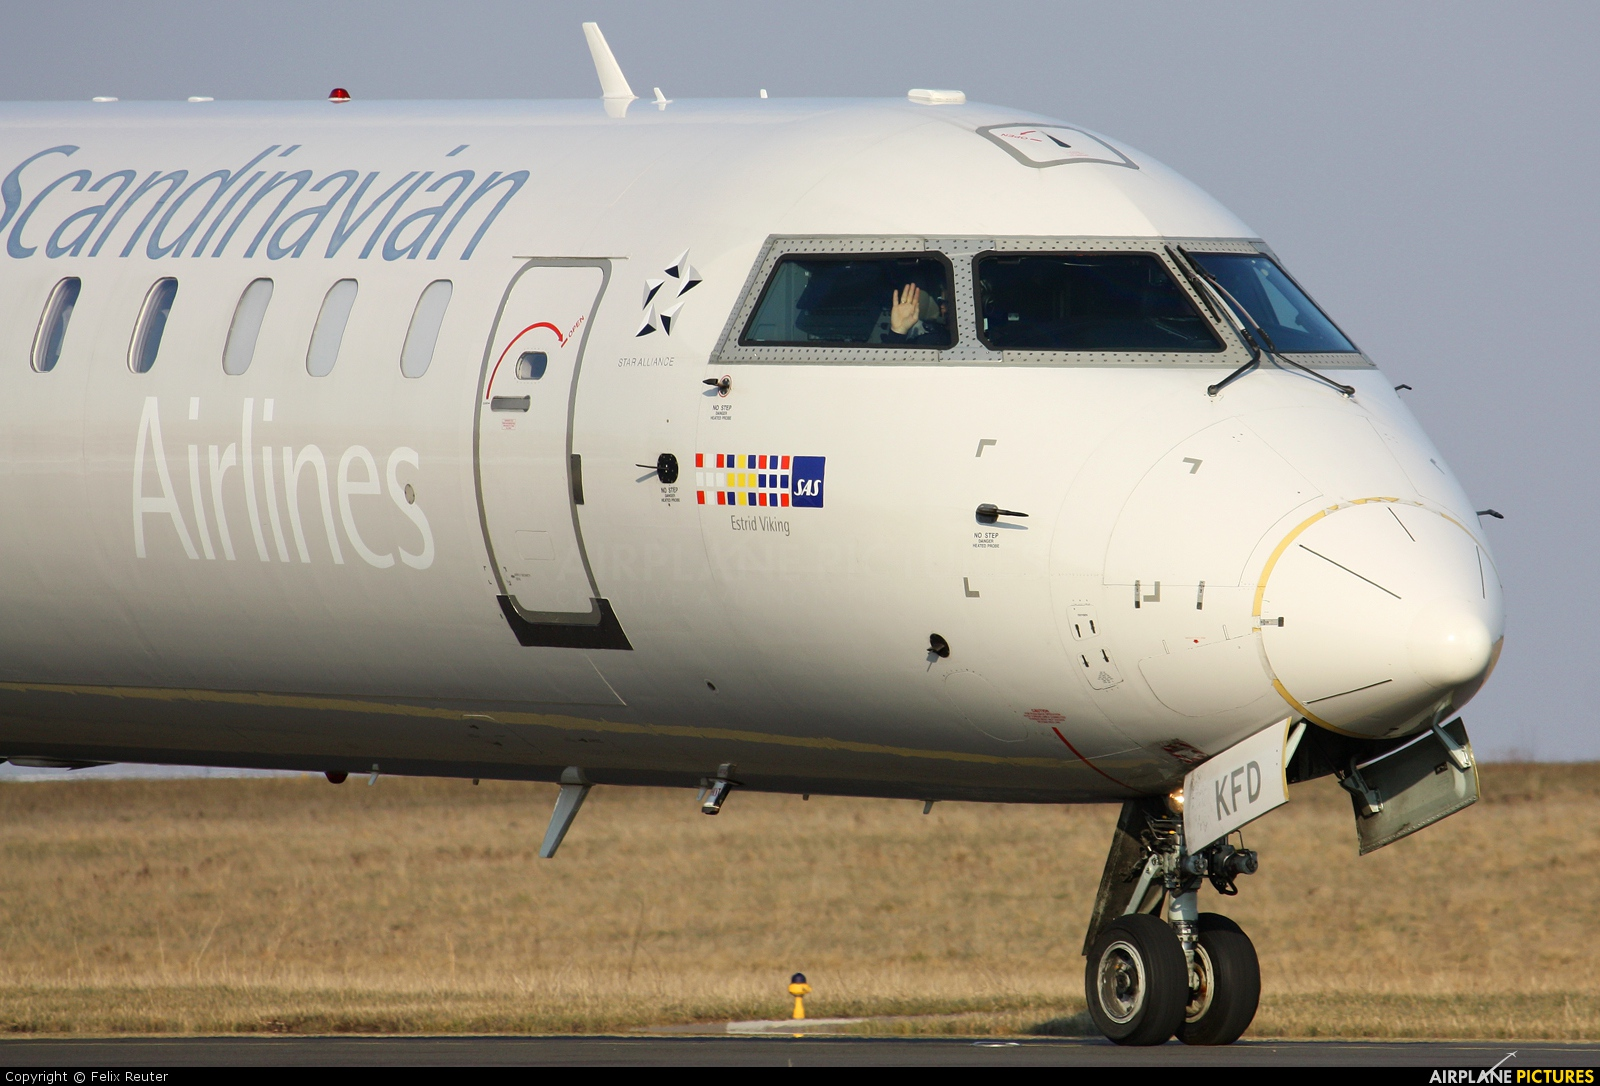 SAS - Scandinavian Airlines OY-KFD aircraft at Luxembourg - Findel